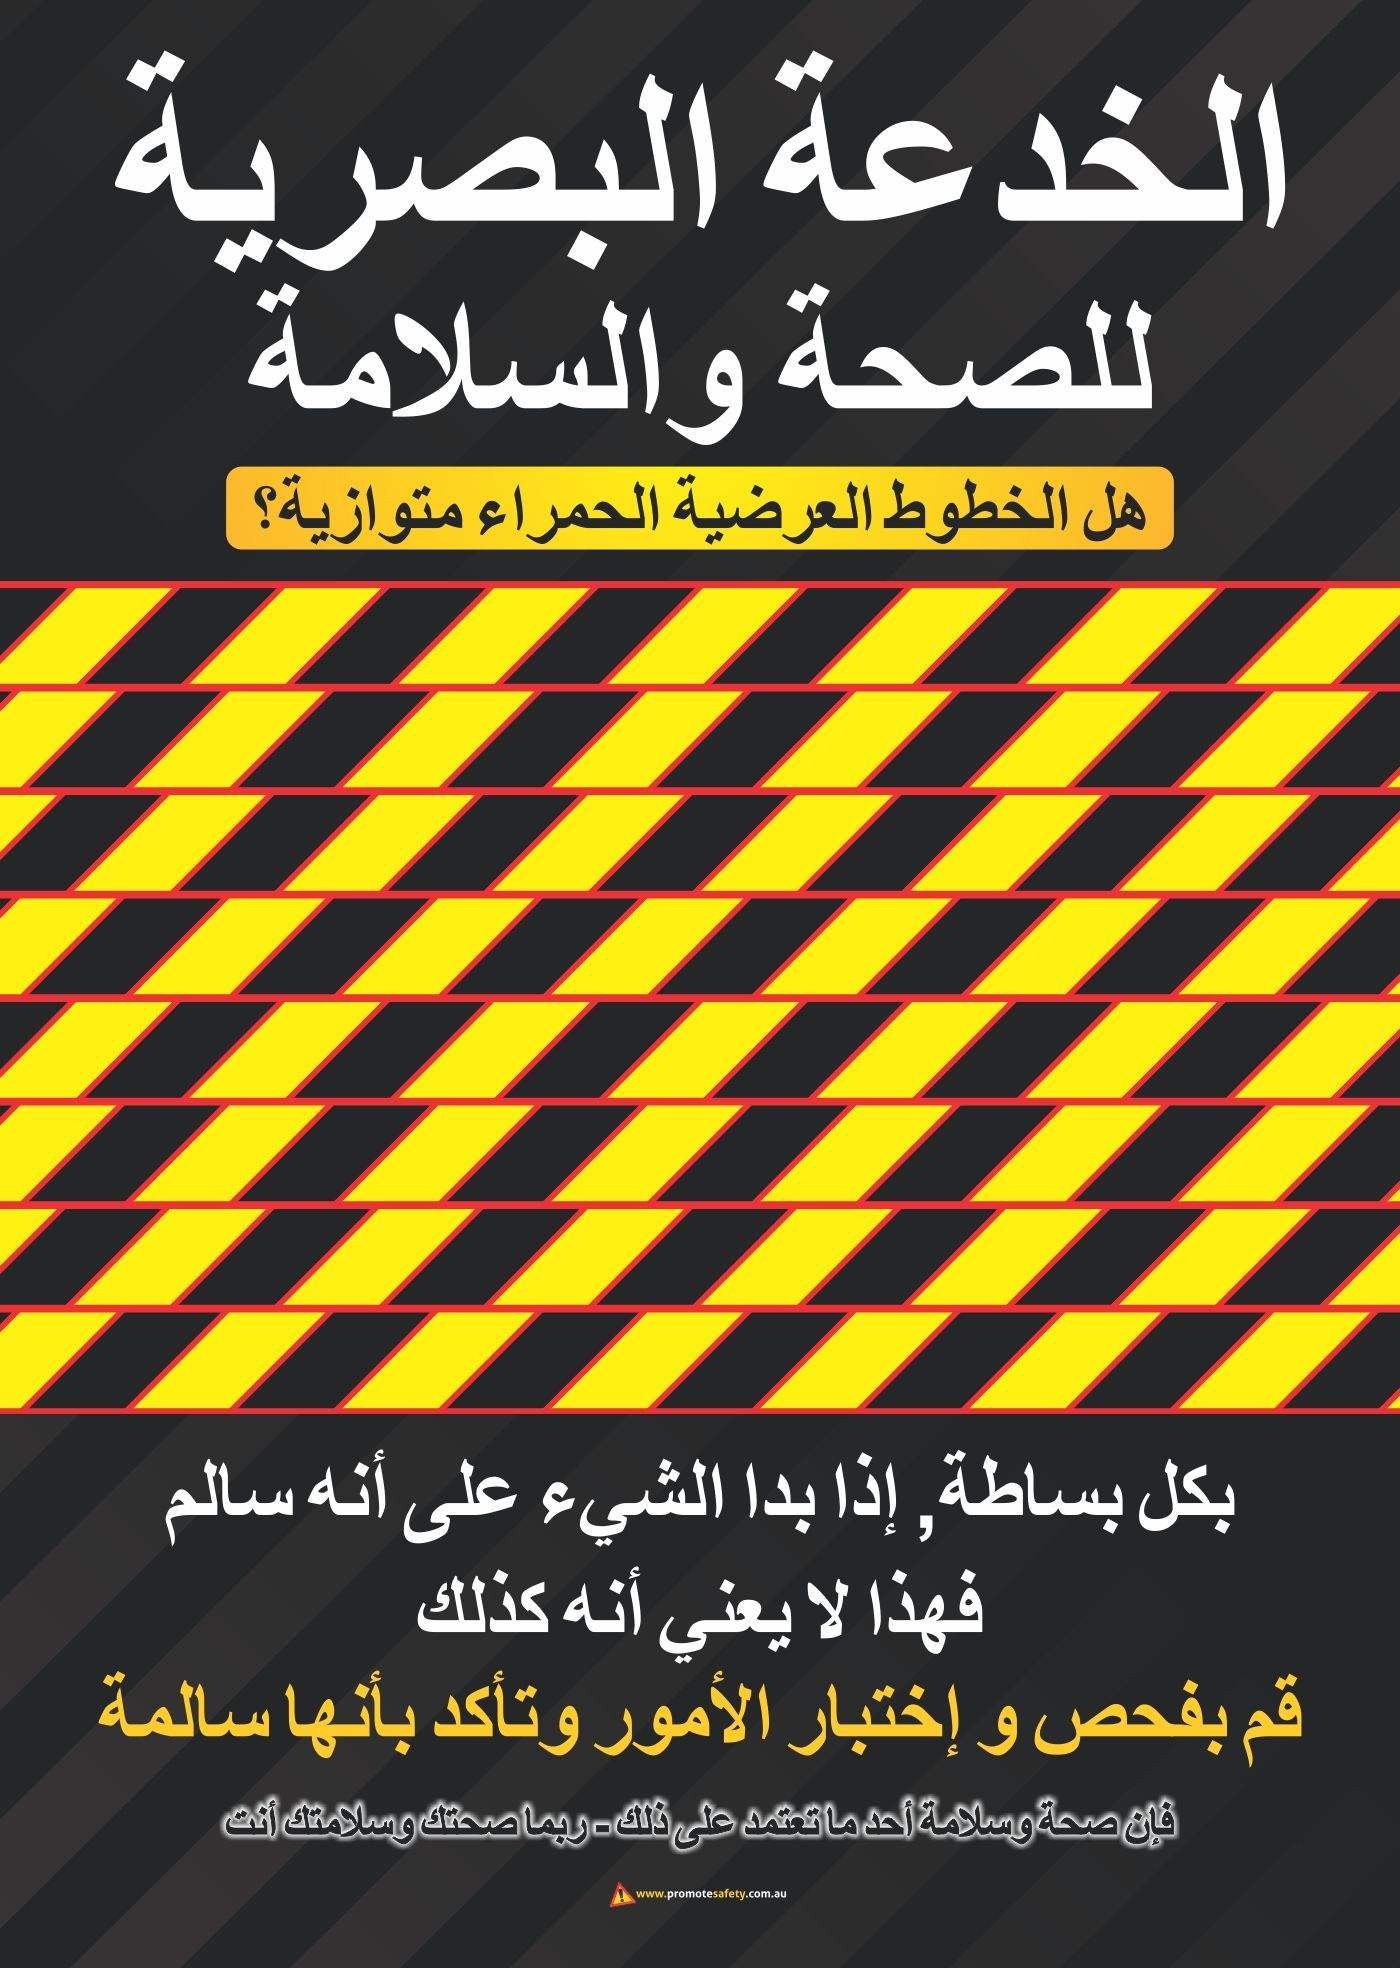 Our second safety poster translated into Arabic. Available